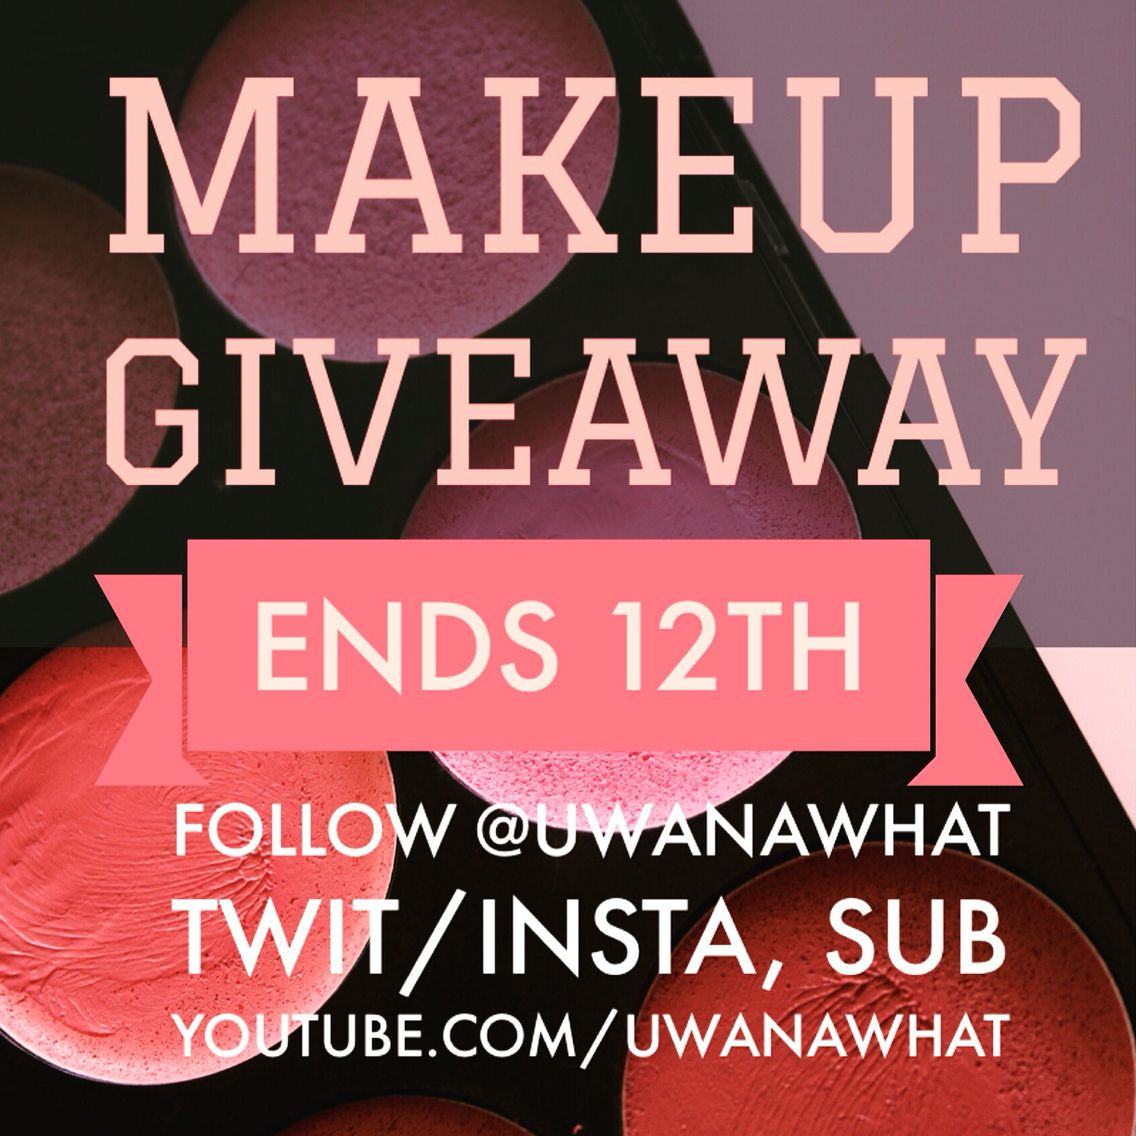 Makeup Giveaway #cosmetics #beauty #makeup #free #contest #win #bbloggera #beautyblogger